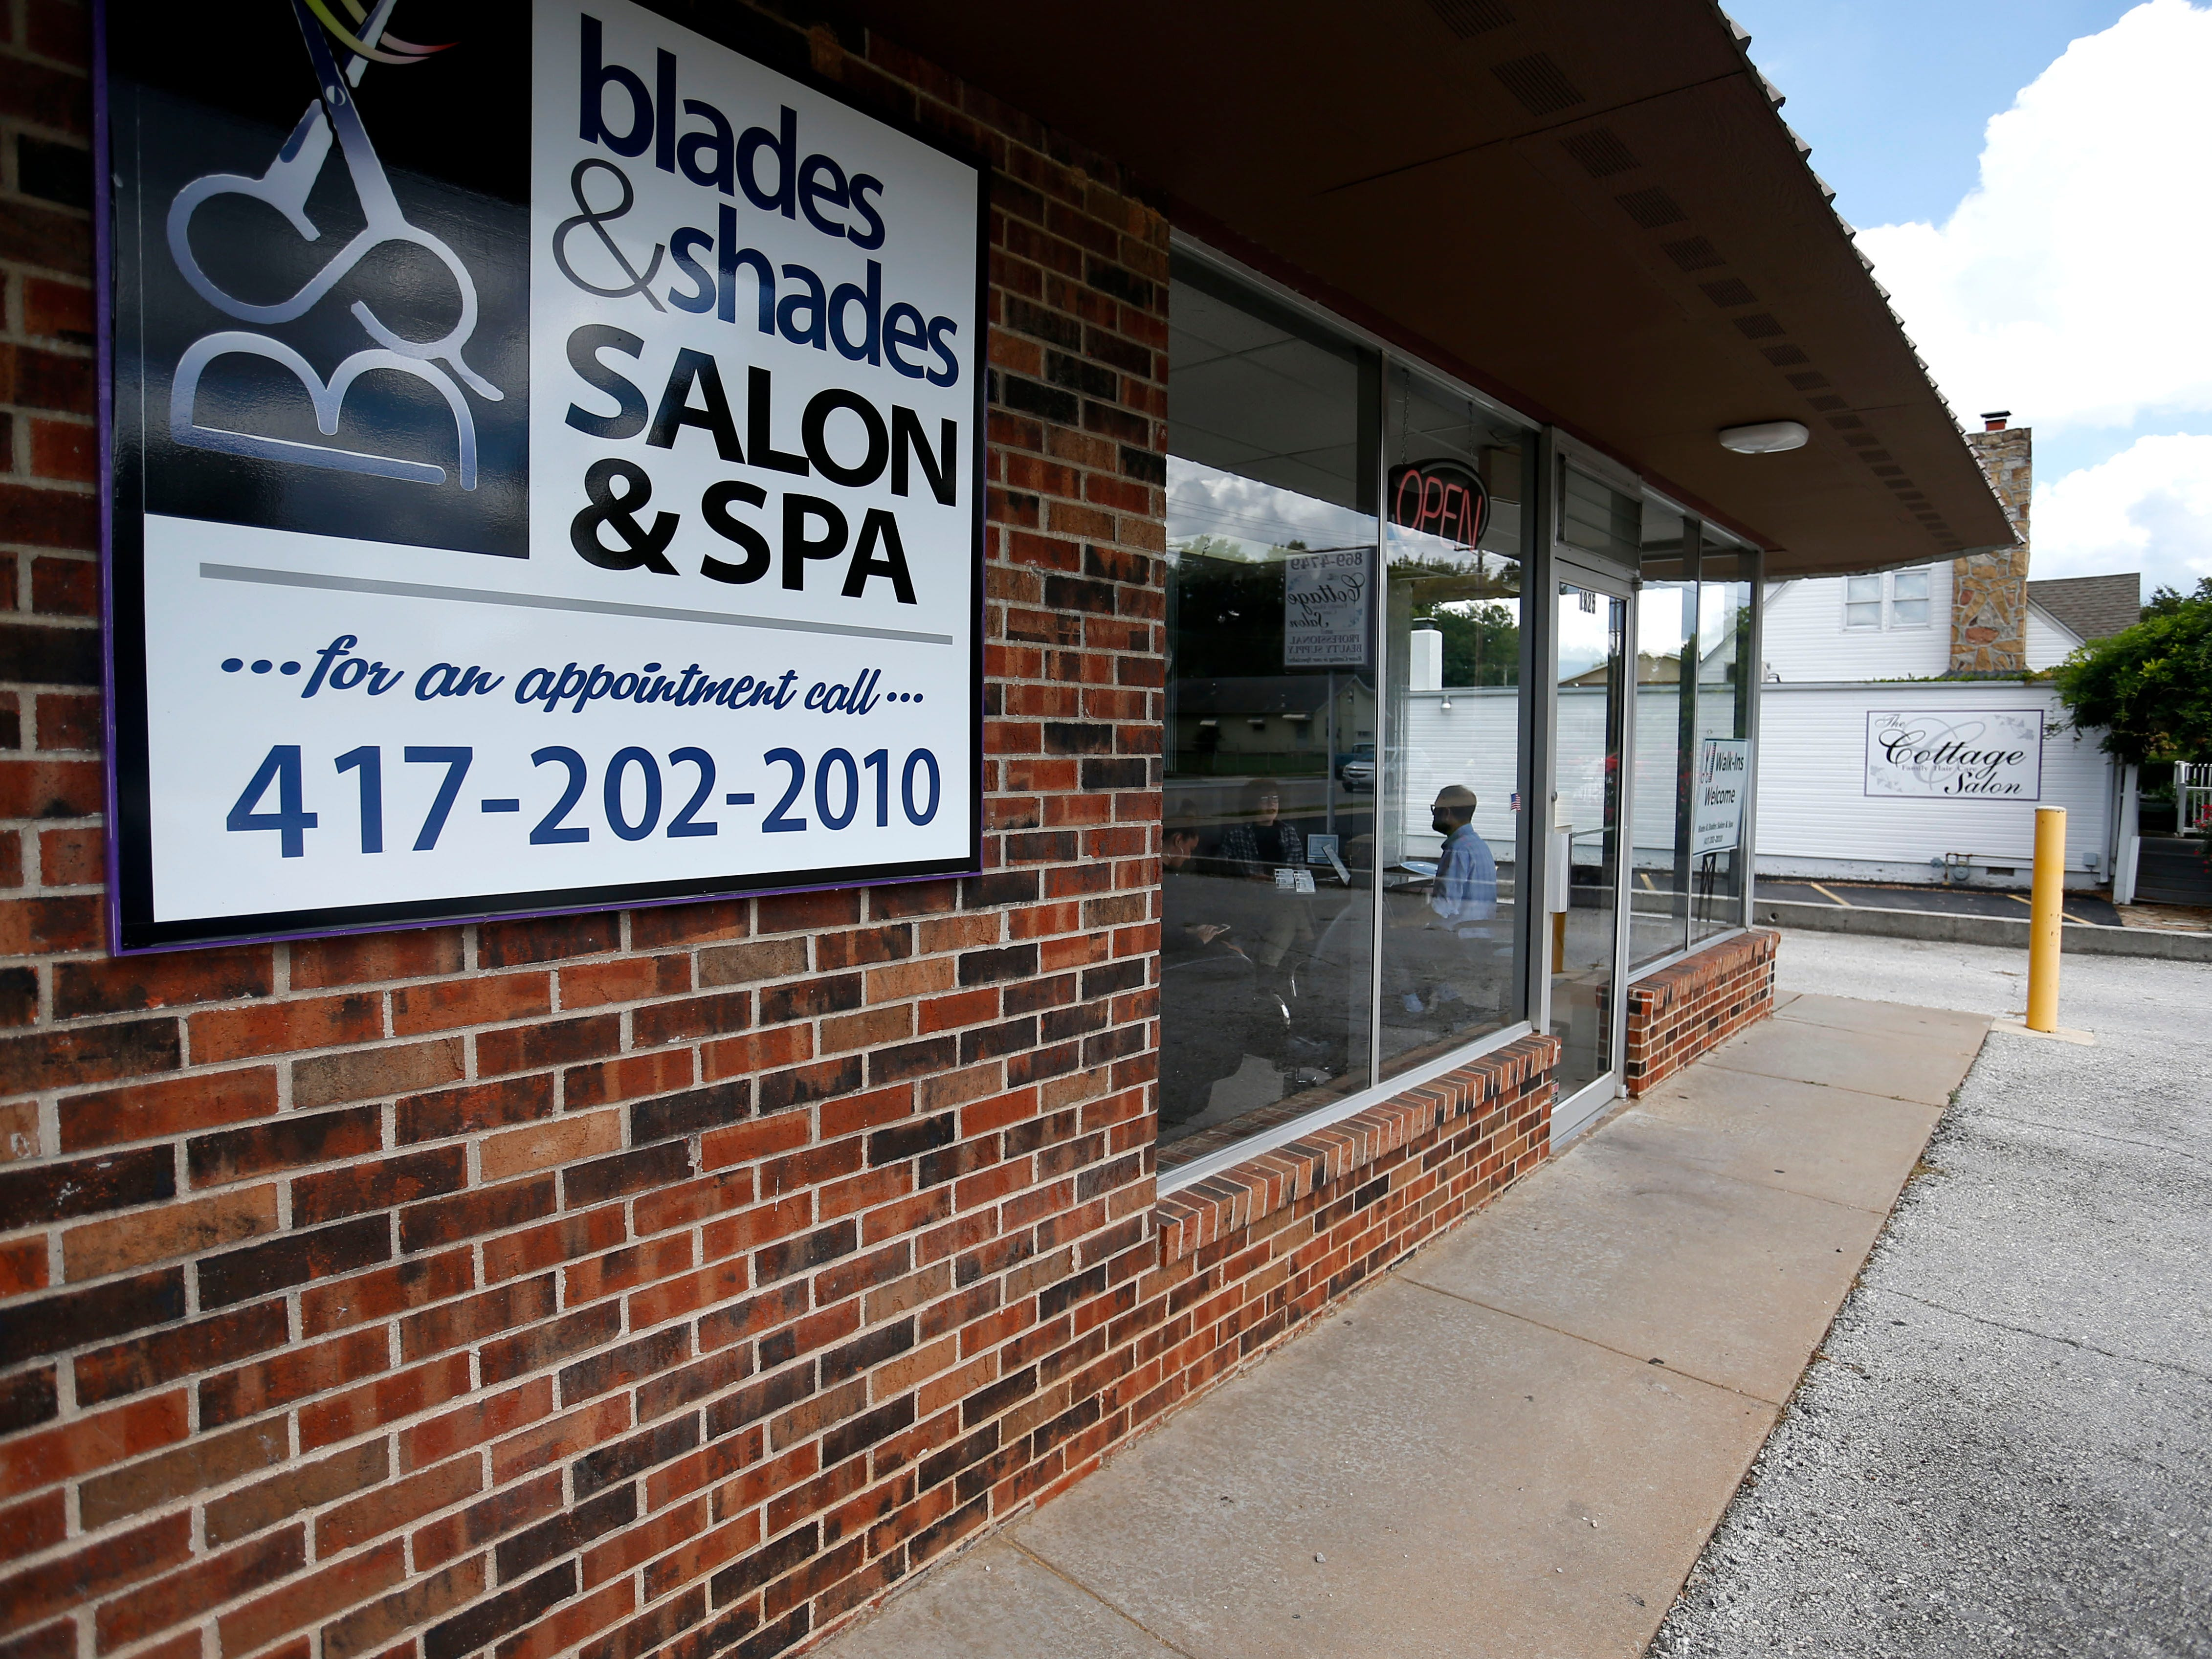 Blades & Shades salon located on East Cherry Street opened in January. The salon is owned by a 16-year-old Parkview High School student.